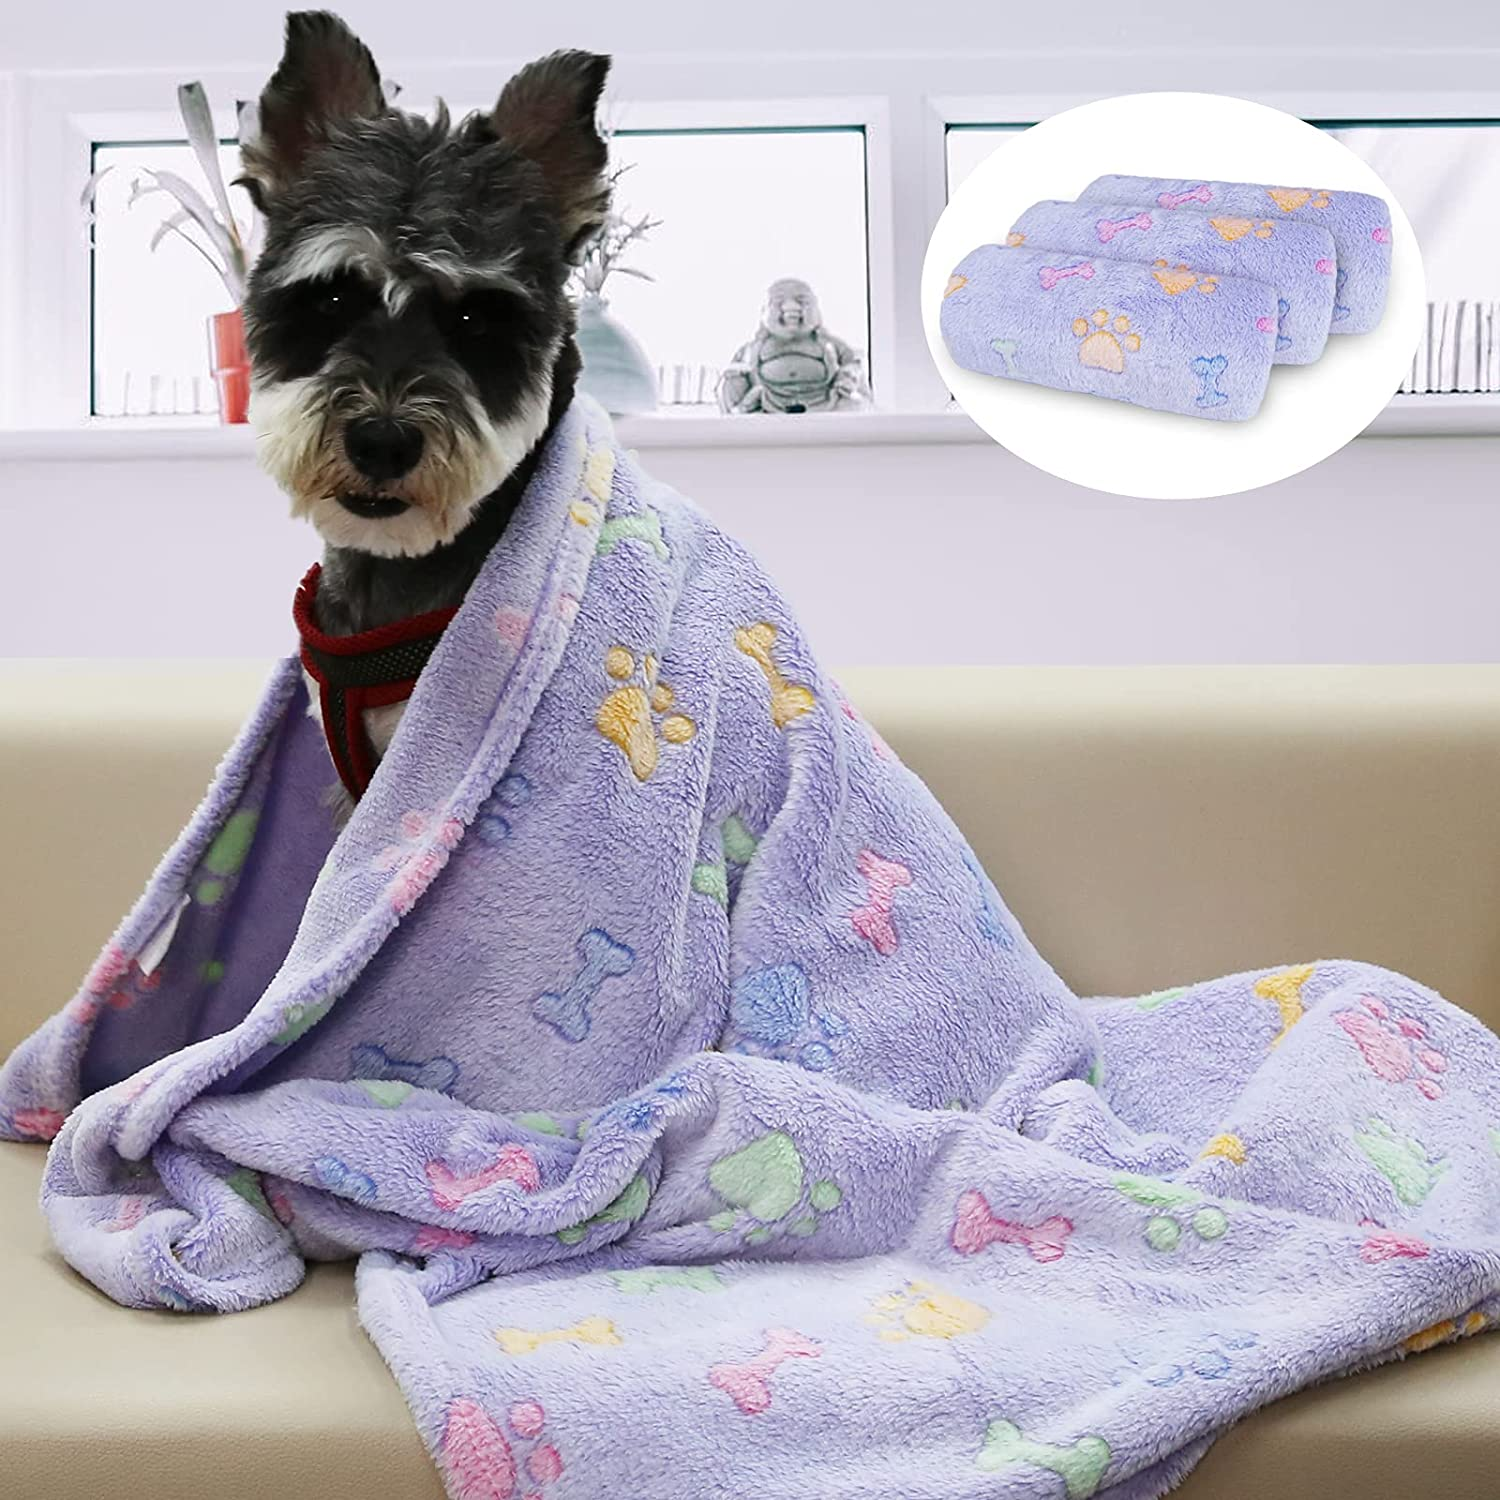 Patas Lague Pet Dog Blanket, 3 Pieces Super Soft Flannel Fleece Puppy Throw Blanket with Cute Print Design for Dog and Cat, Machine Washable (Violet Bone,20x30 Inches) : Pet Supplies